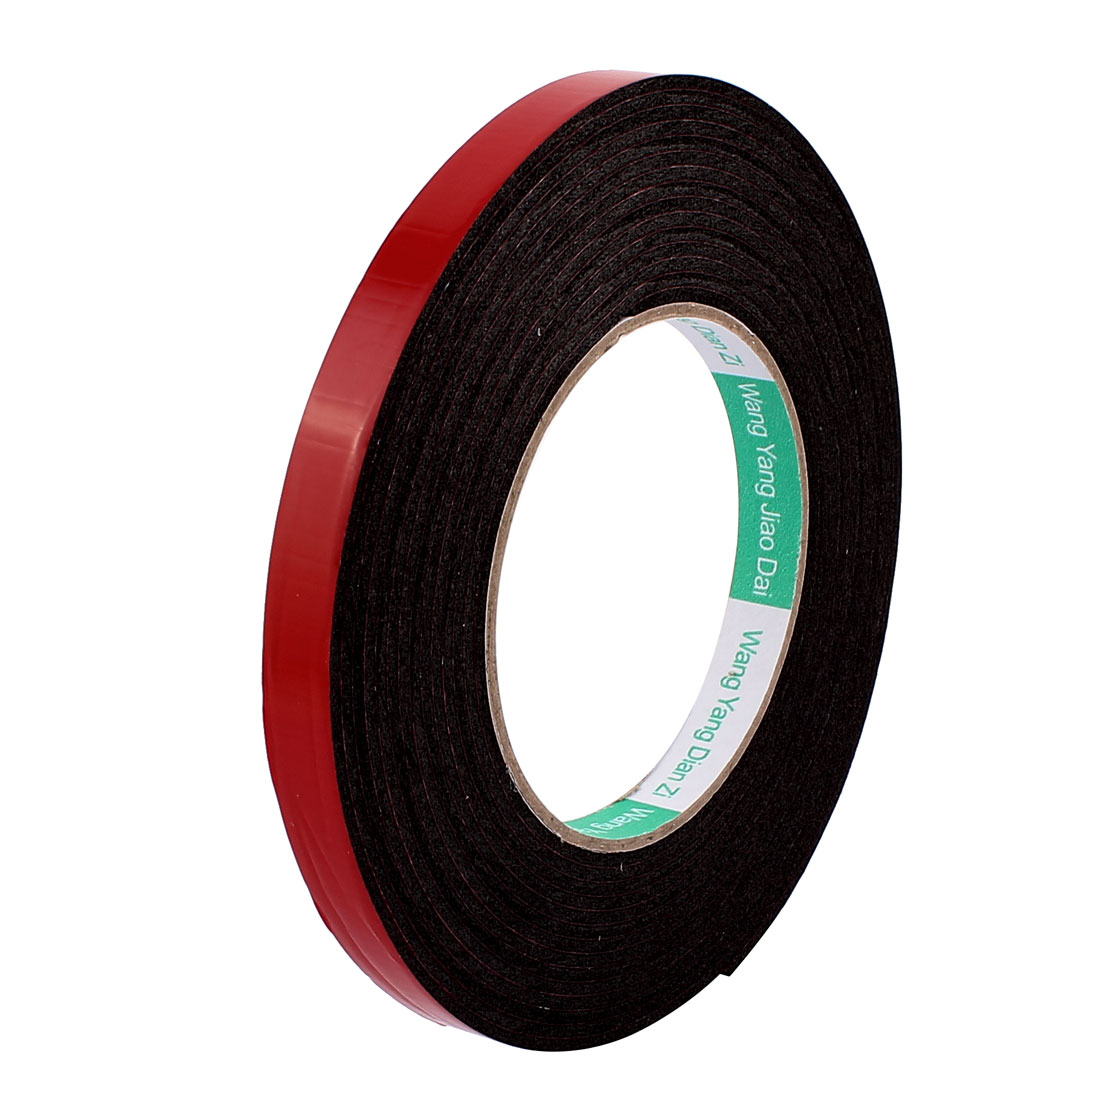 Black Strong Double Sided Adhesive Tape Sponge Tape 12MM Width 5M Long